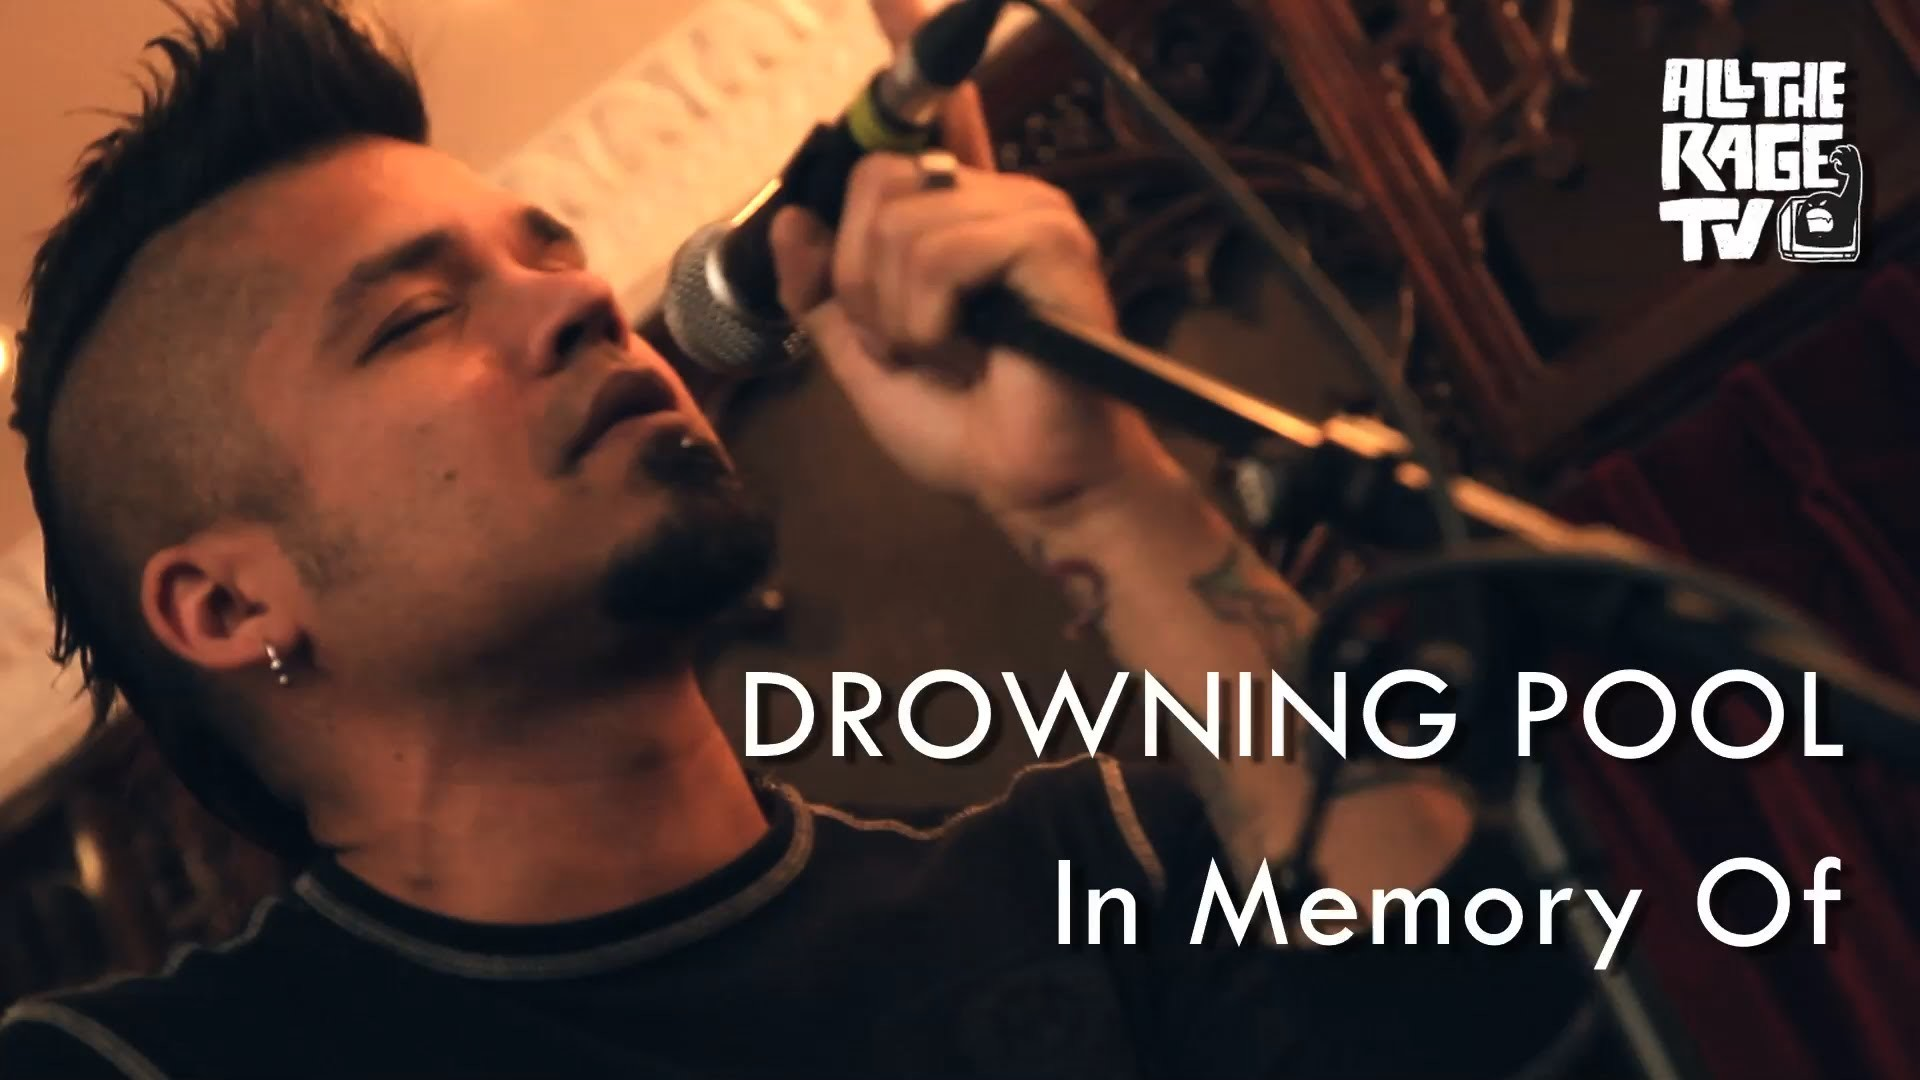 1920x1080 [ACOUSTIC] Drowning Pool - In Memory Of (All The Rage TV) - YouTube